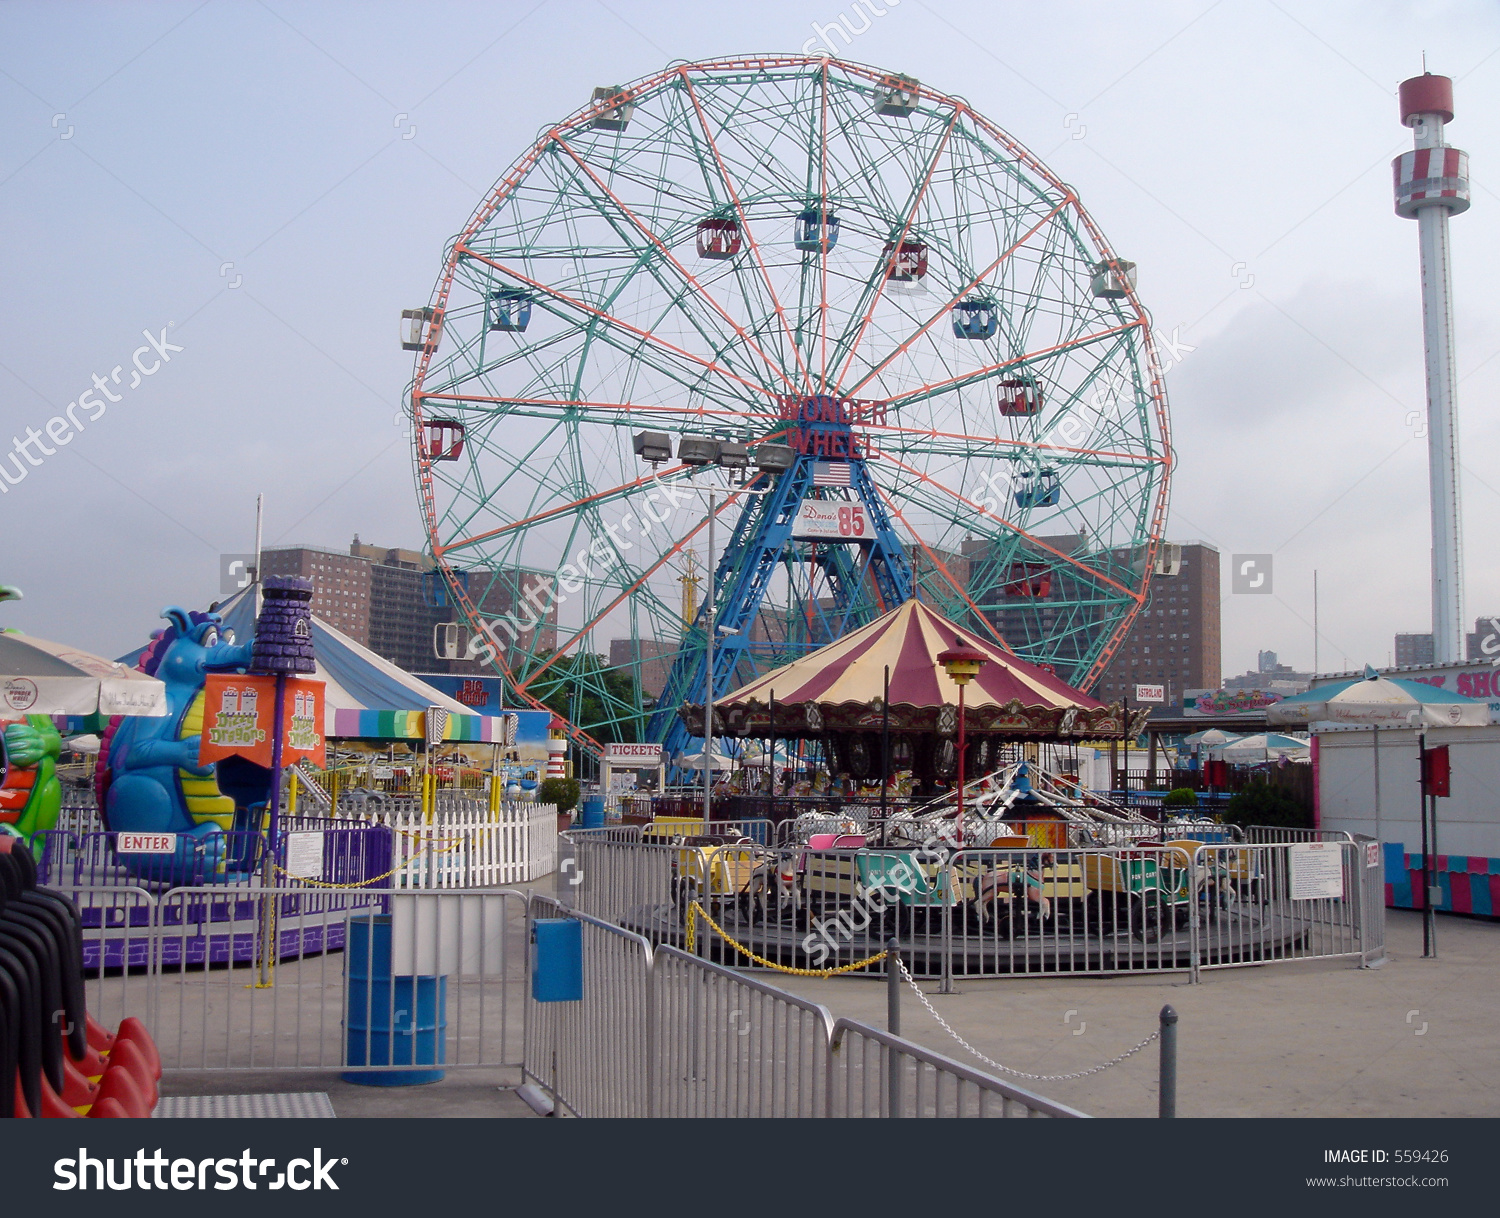 Astroland Amusement Park Coney Island Brooklyn Stock Photo 559426.